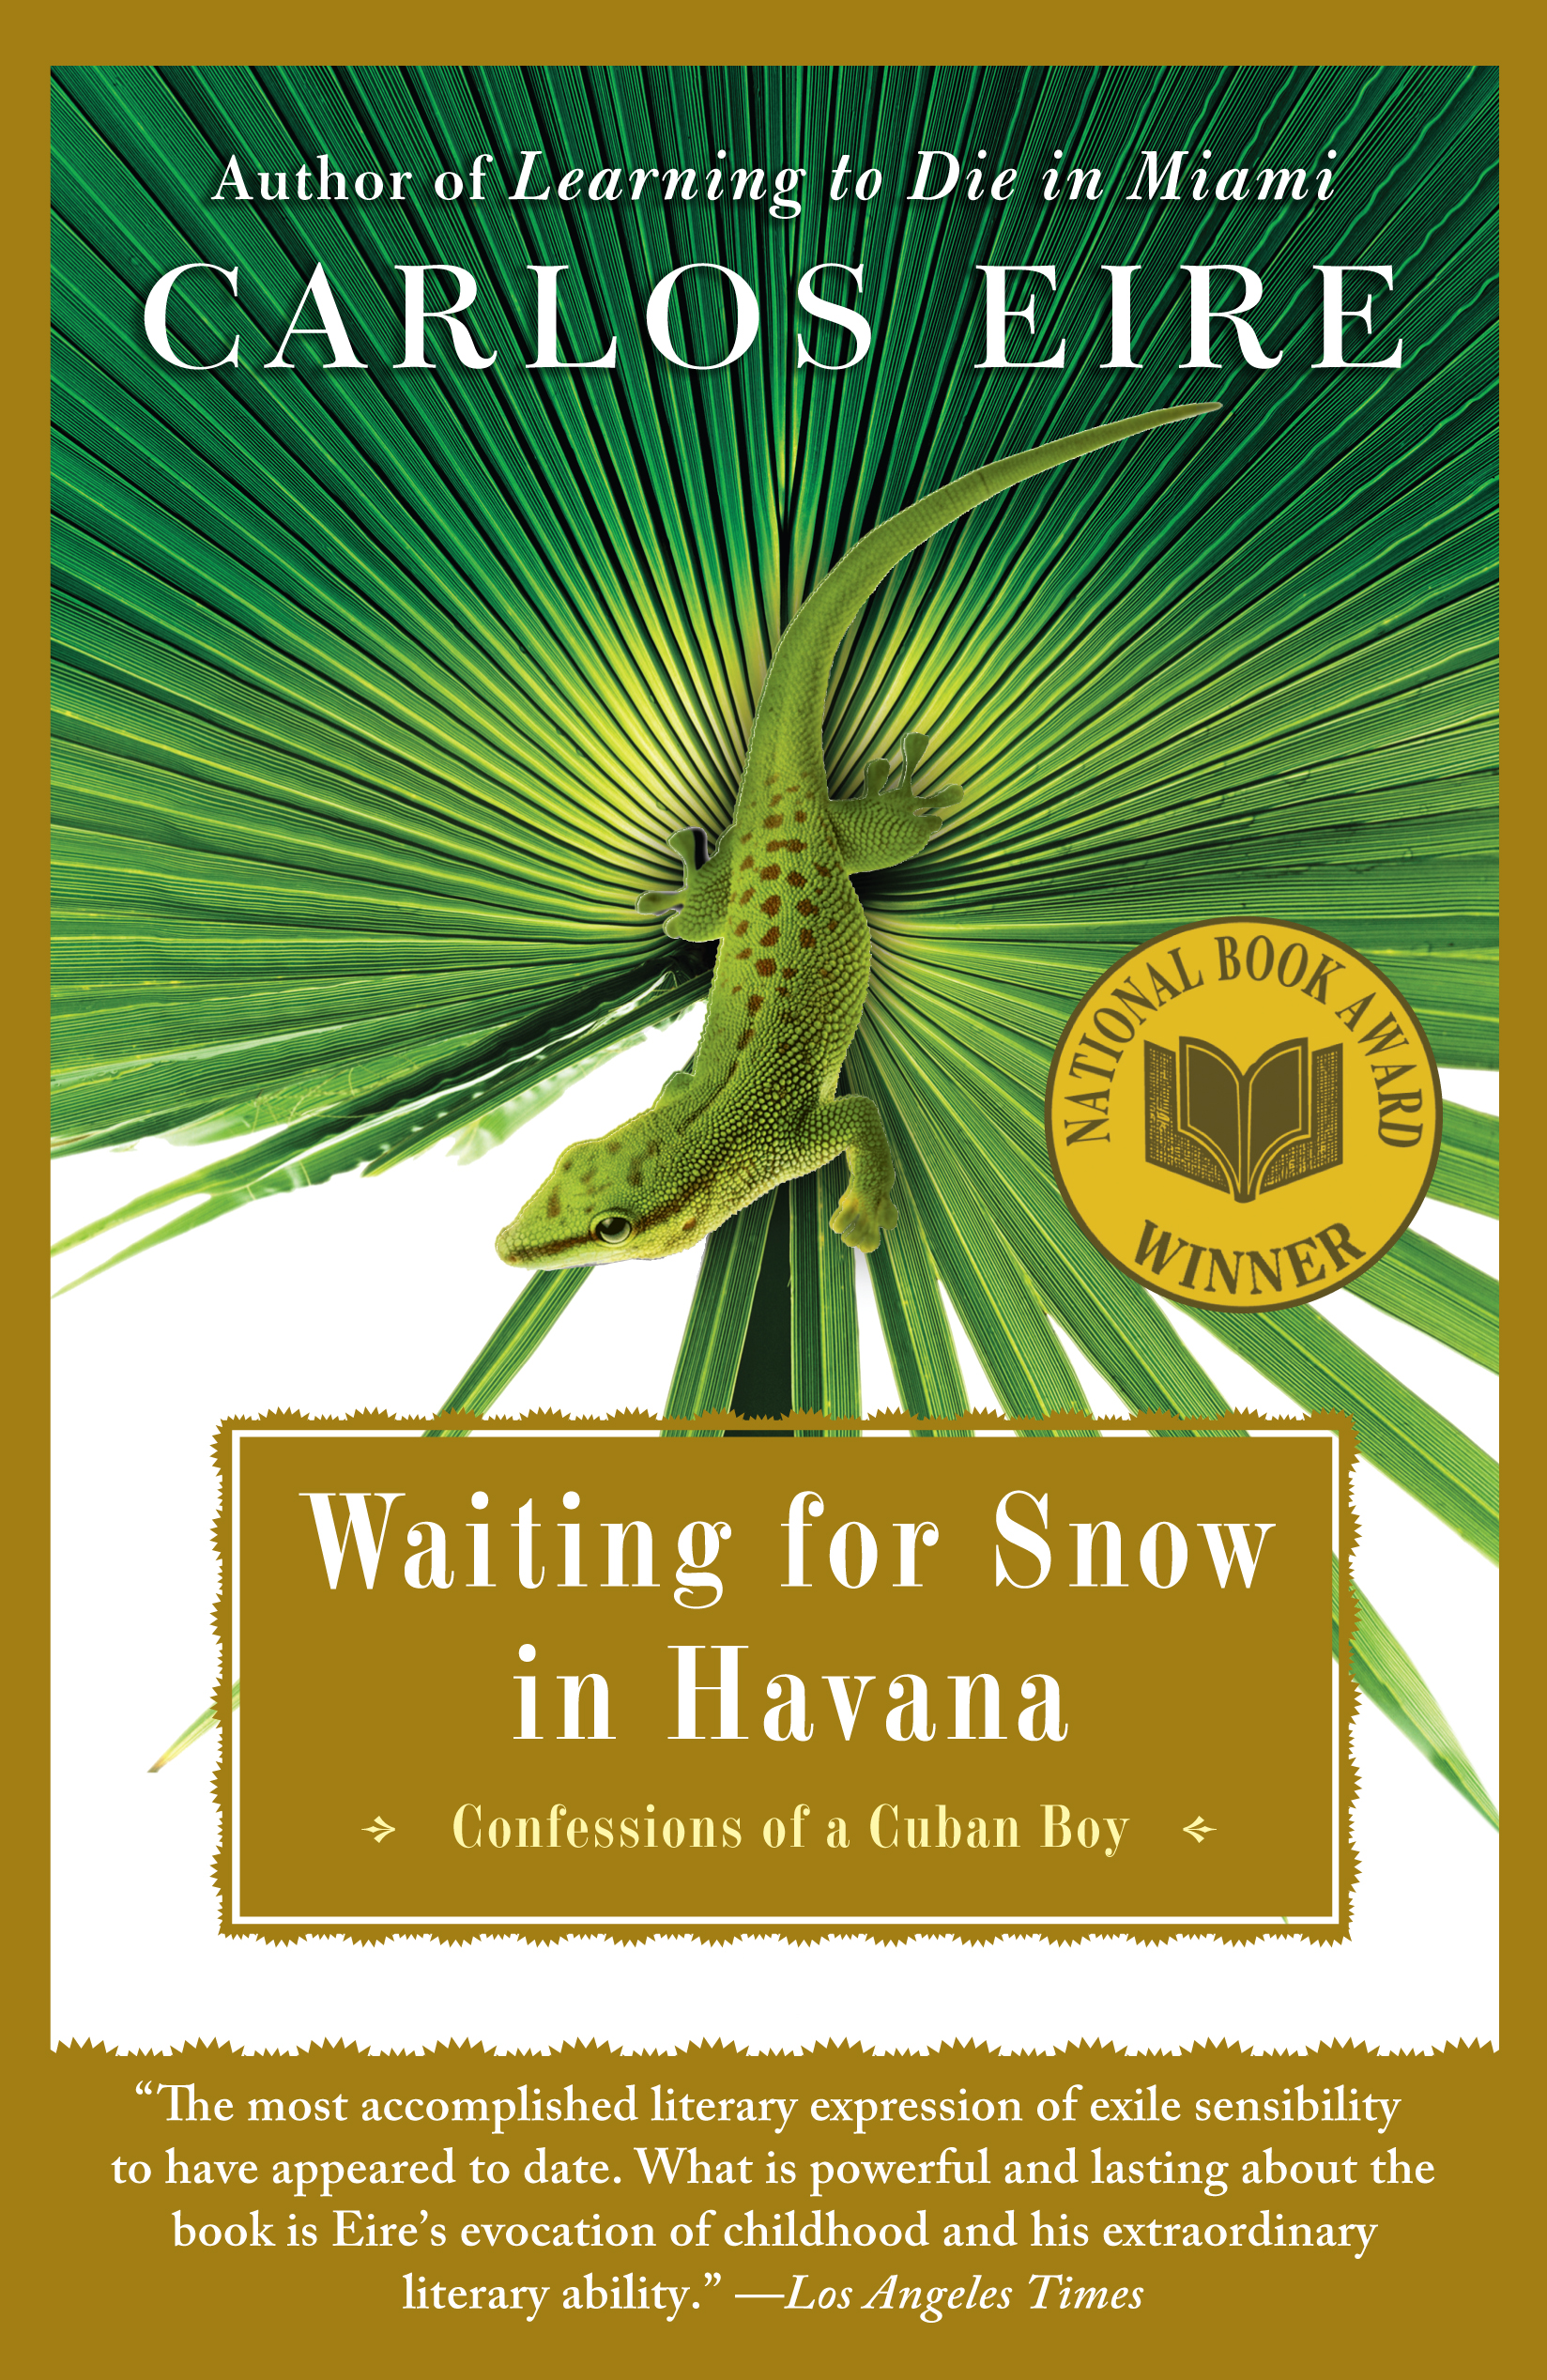 The cover of the book Waiting for Snow in Havana